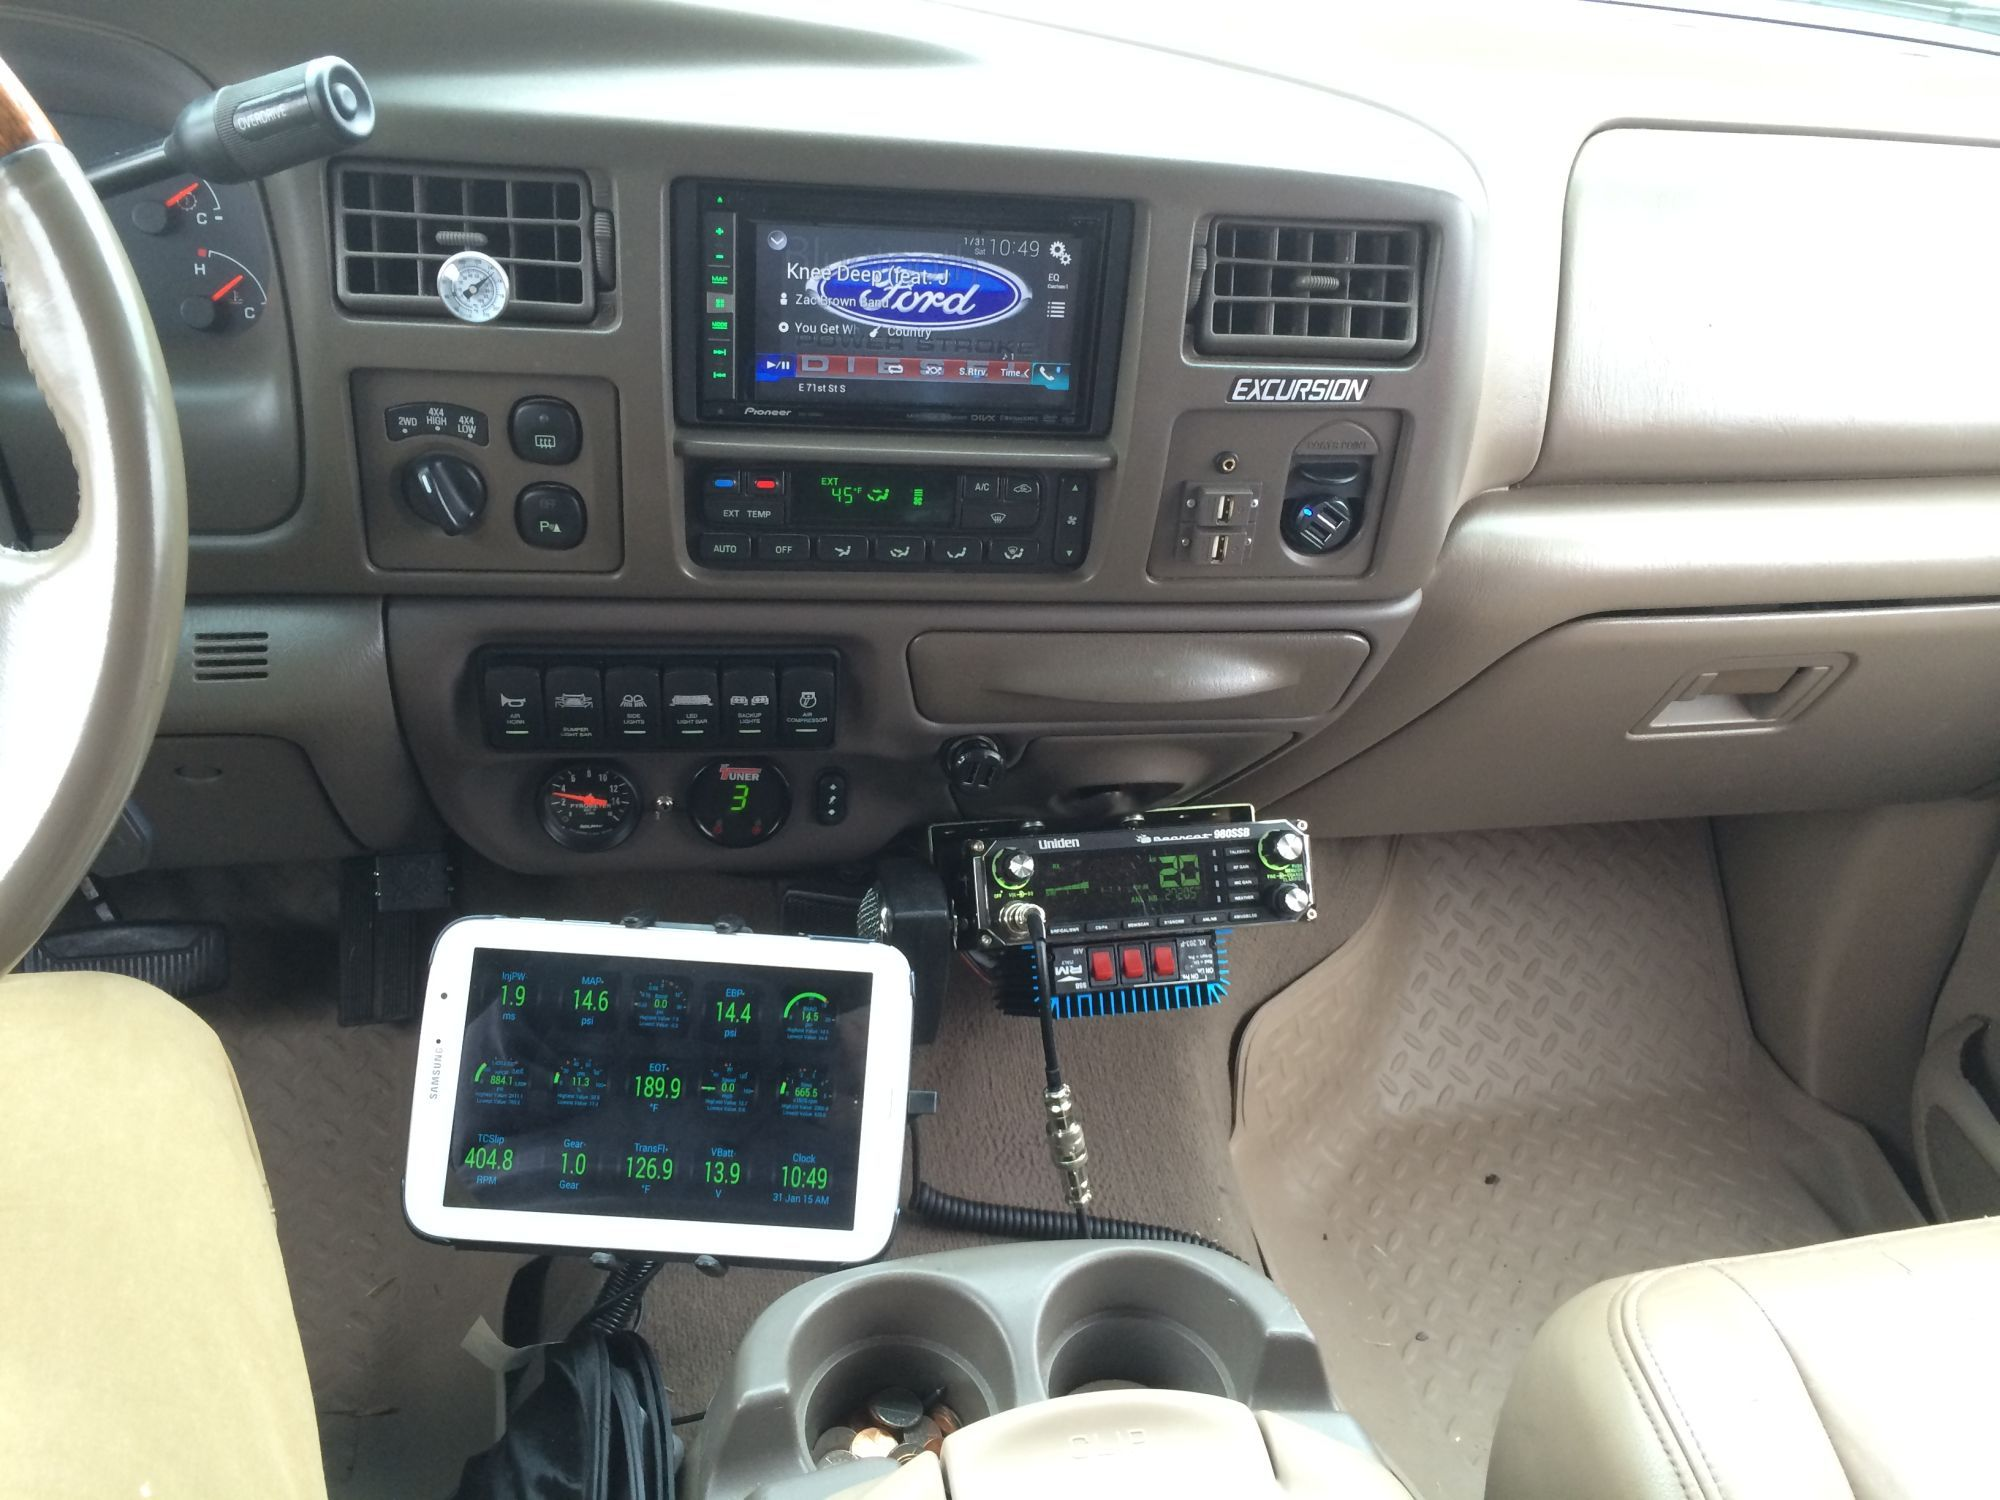 2012 Dodge Auxiliary Switches Wiring Diagram Uniden Cobra Cb Dash Mounted In A Ford Excursion